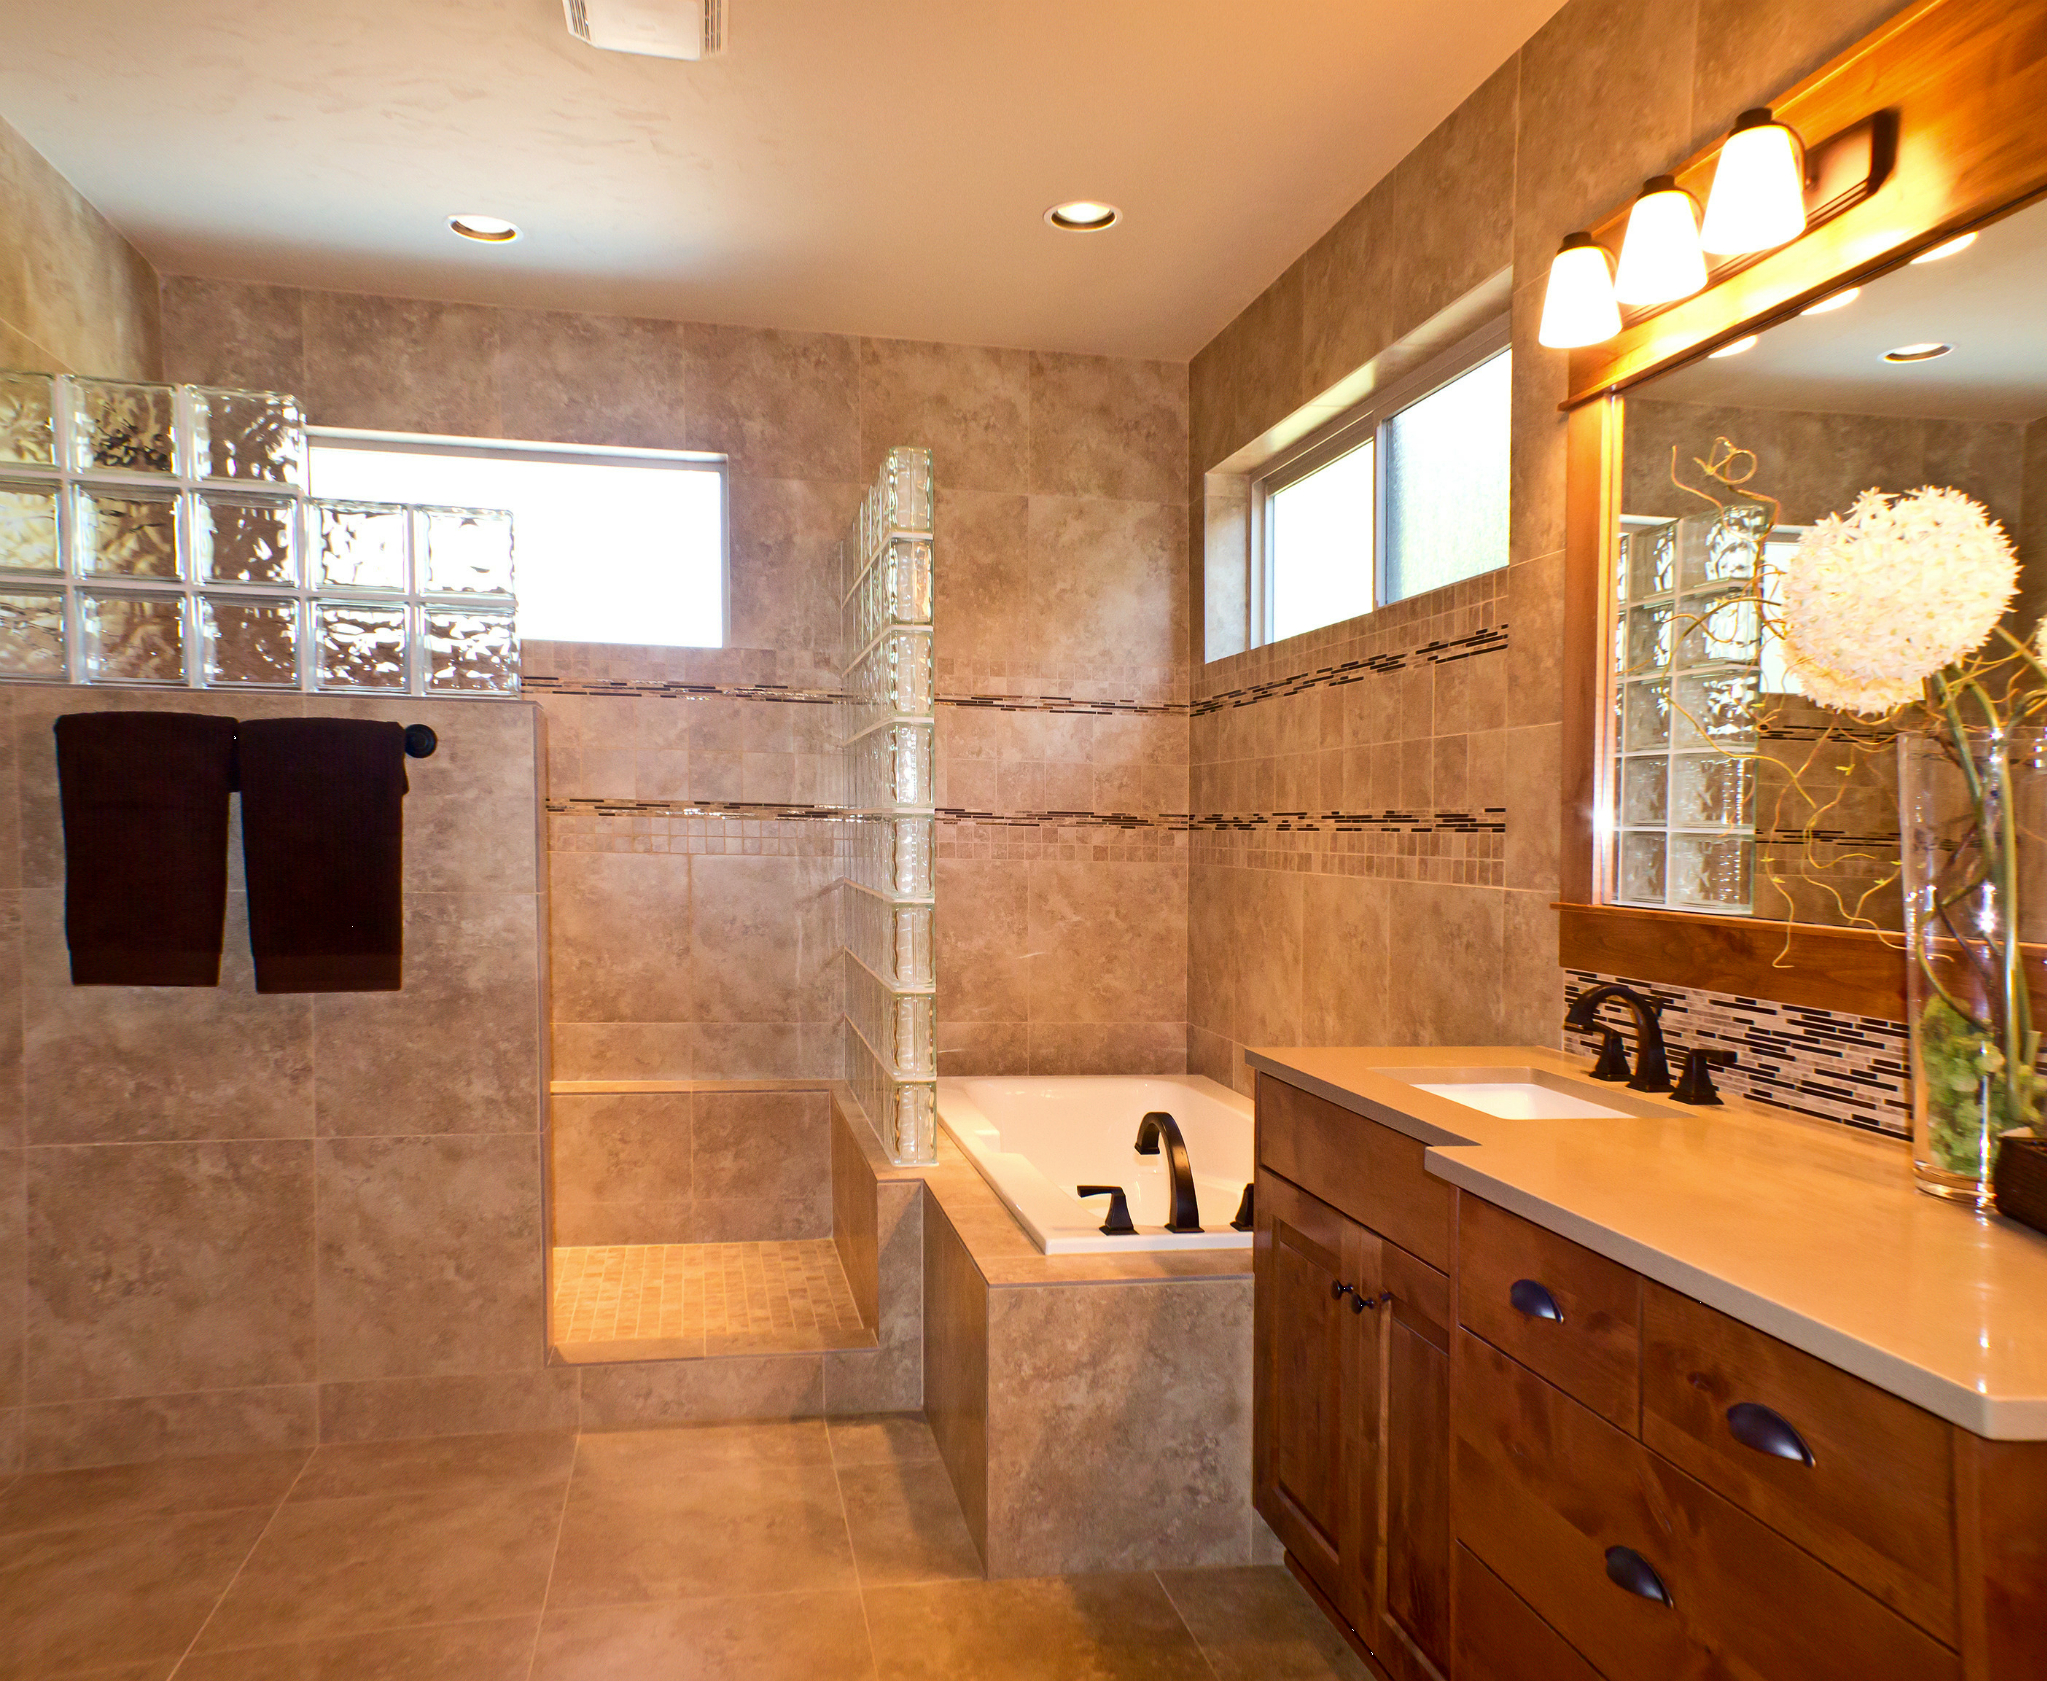 Kitchen Remodeling And Bathroom Remodel Louisville